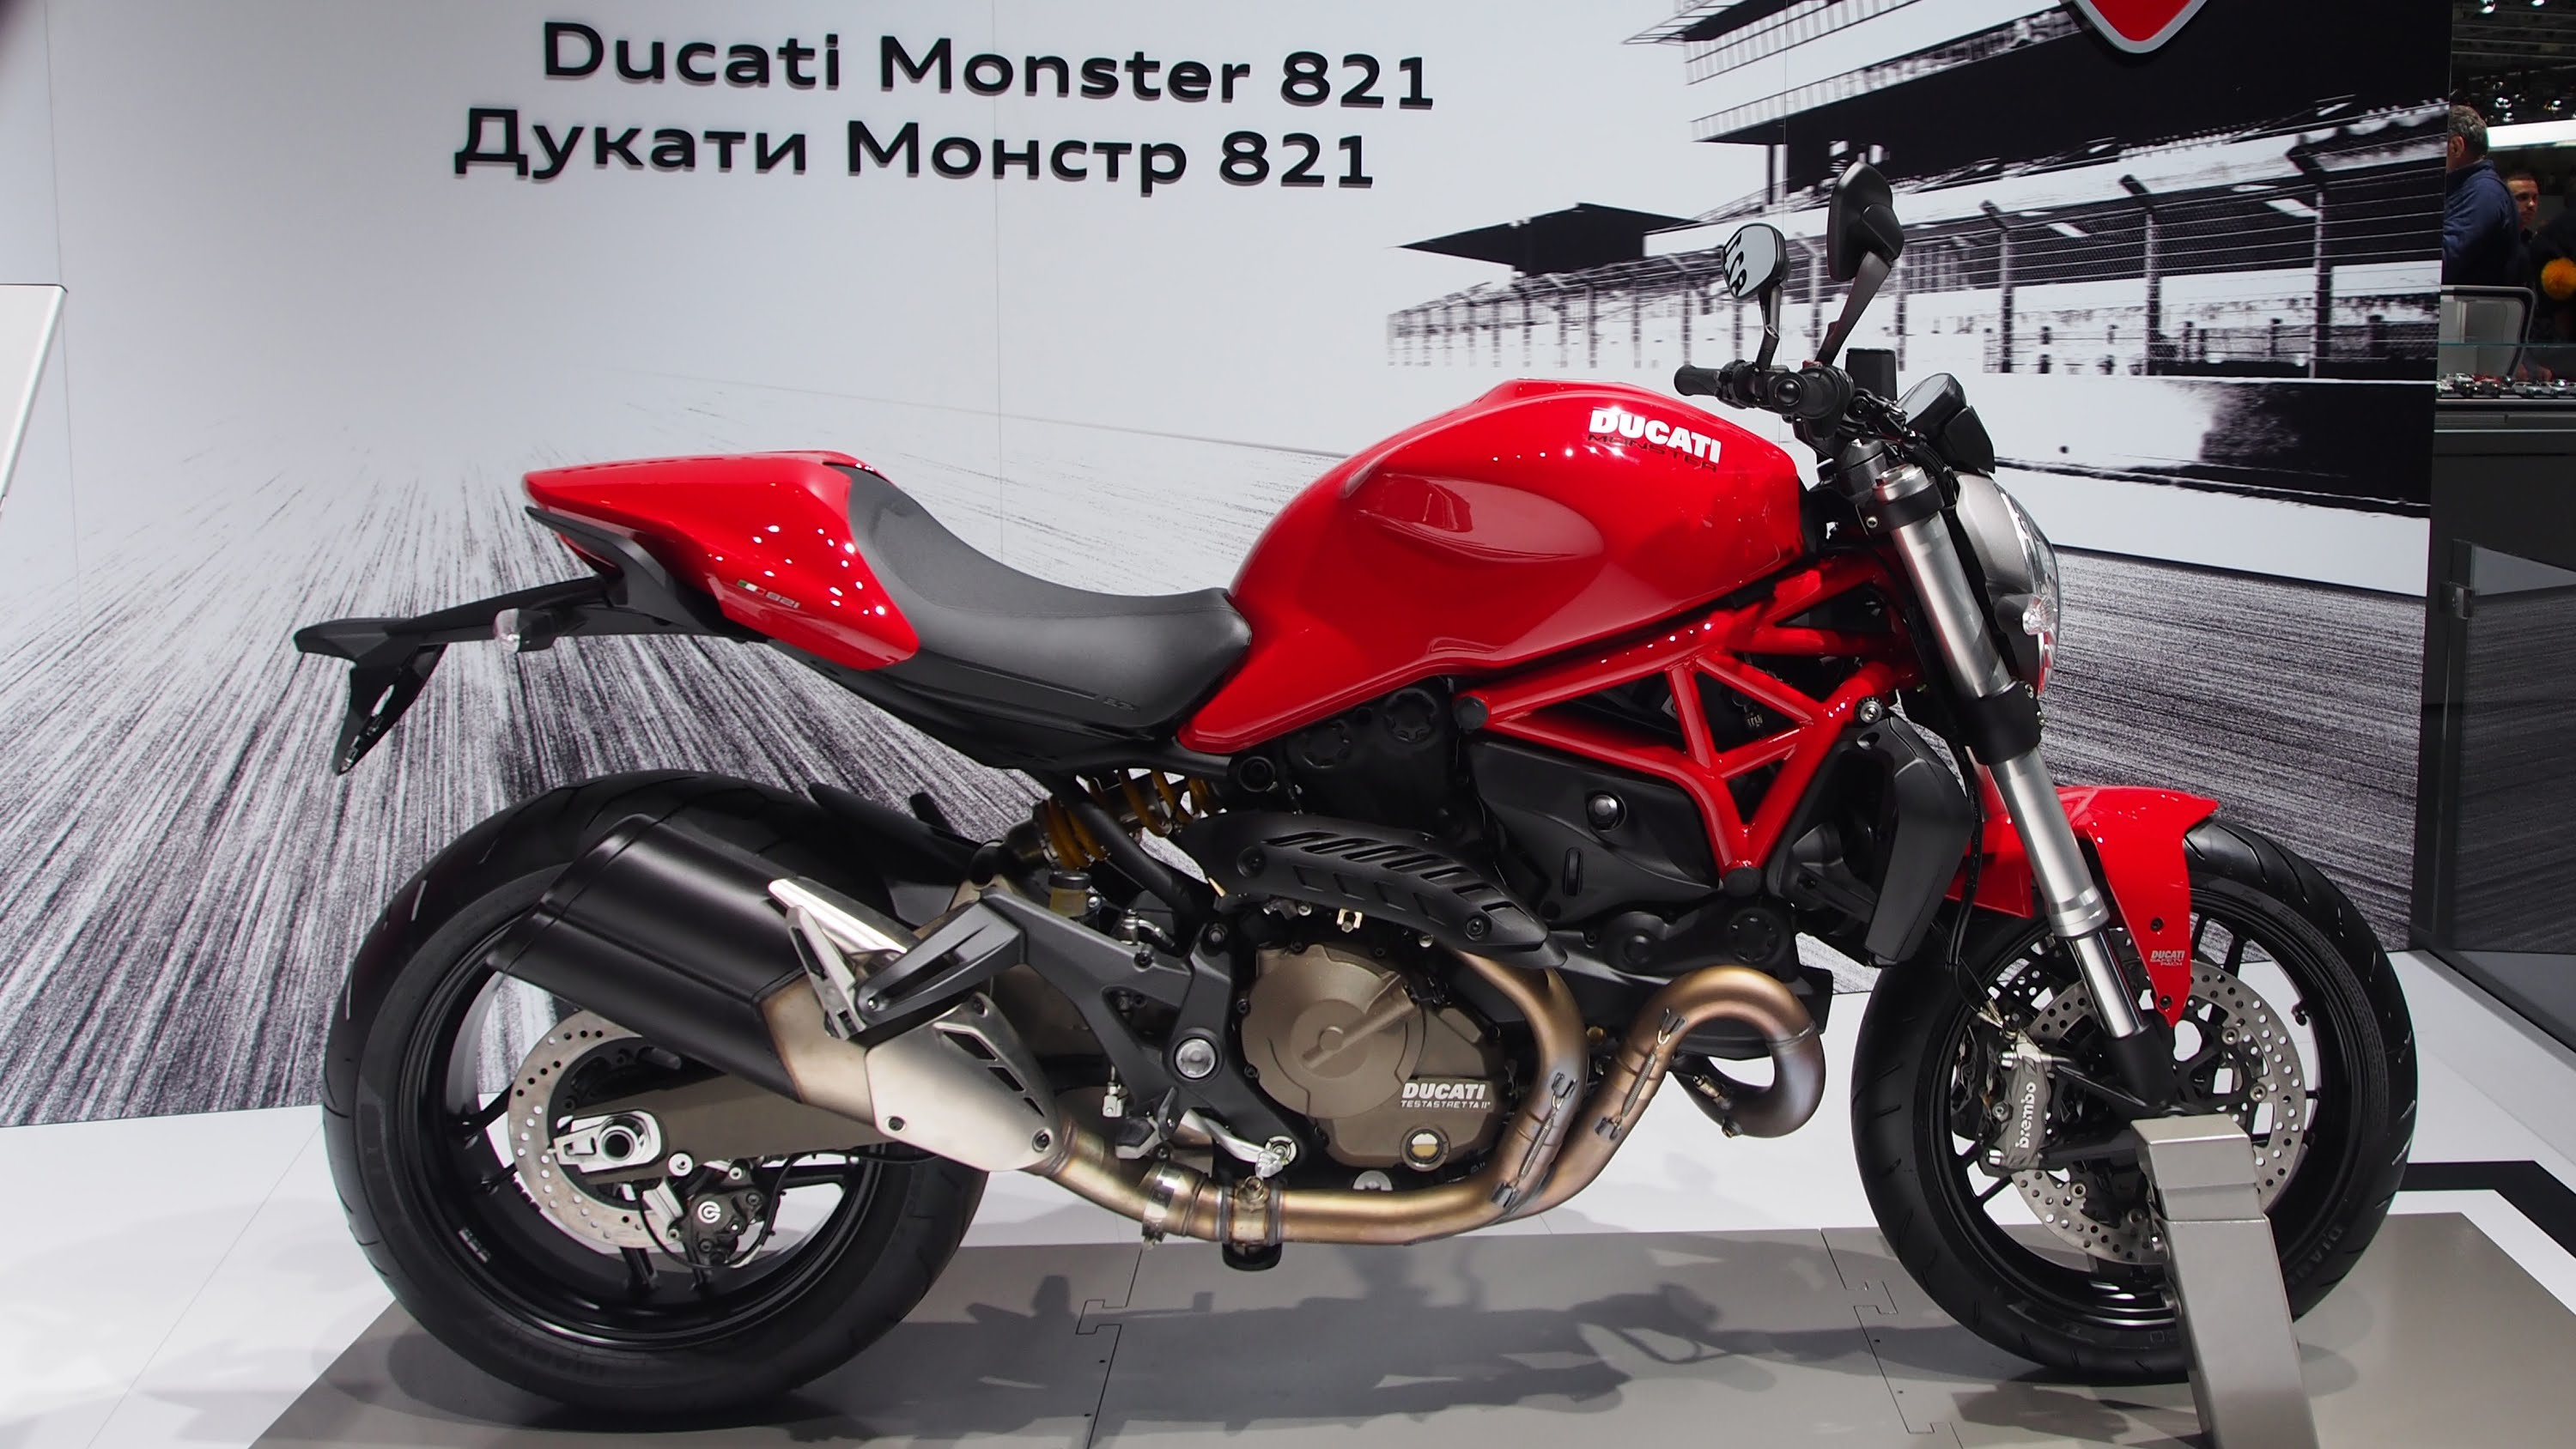 Ducati Monster 821 images #79381